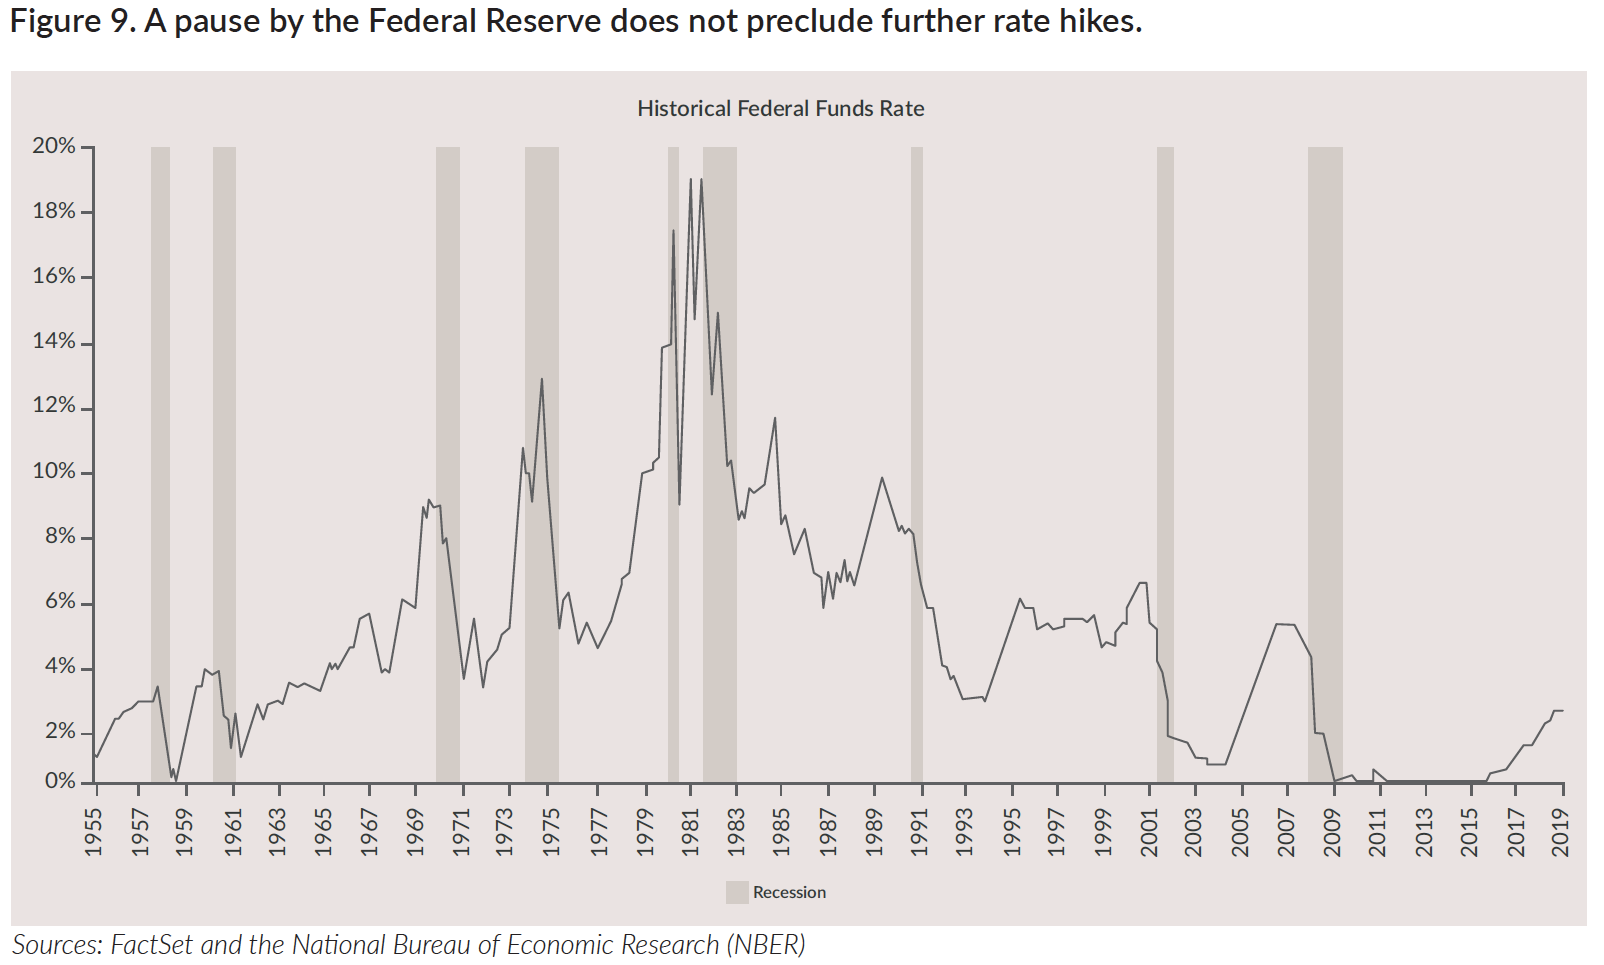 Historical Federal Funds Rate